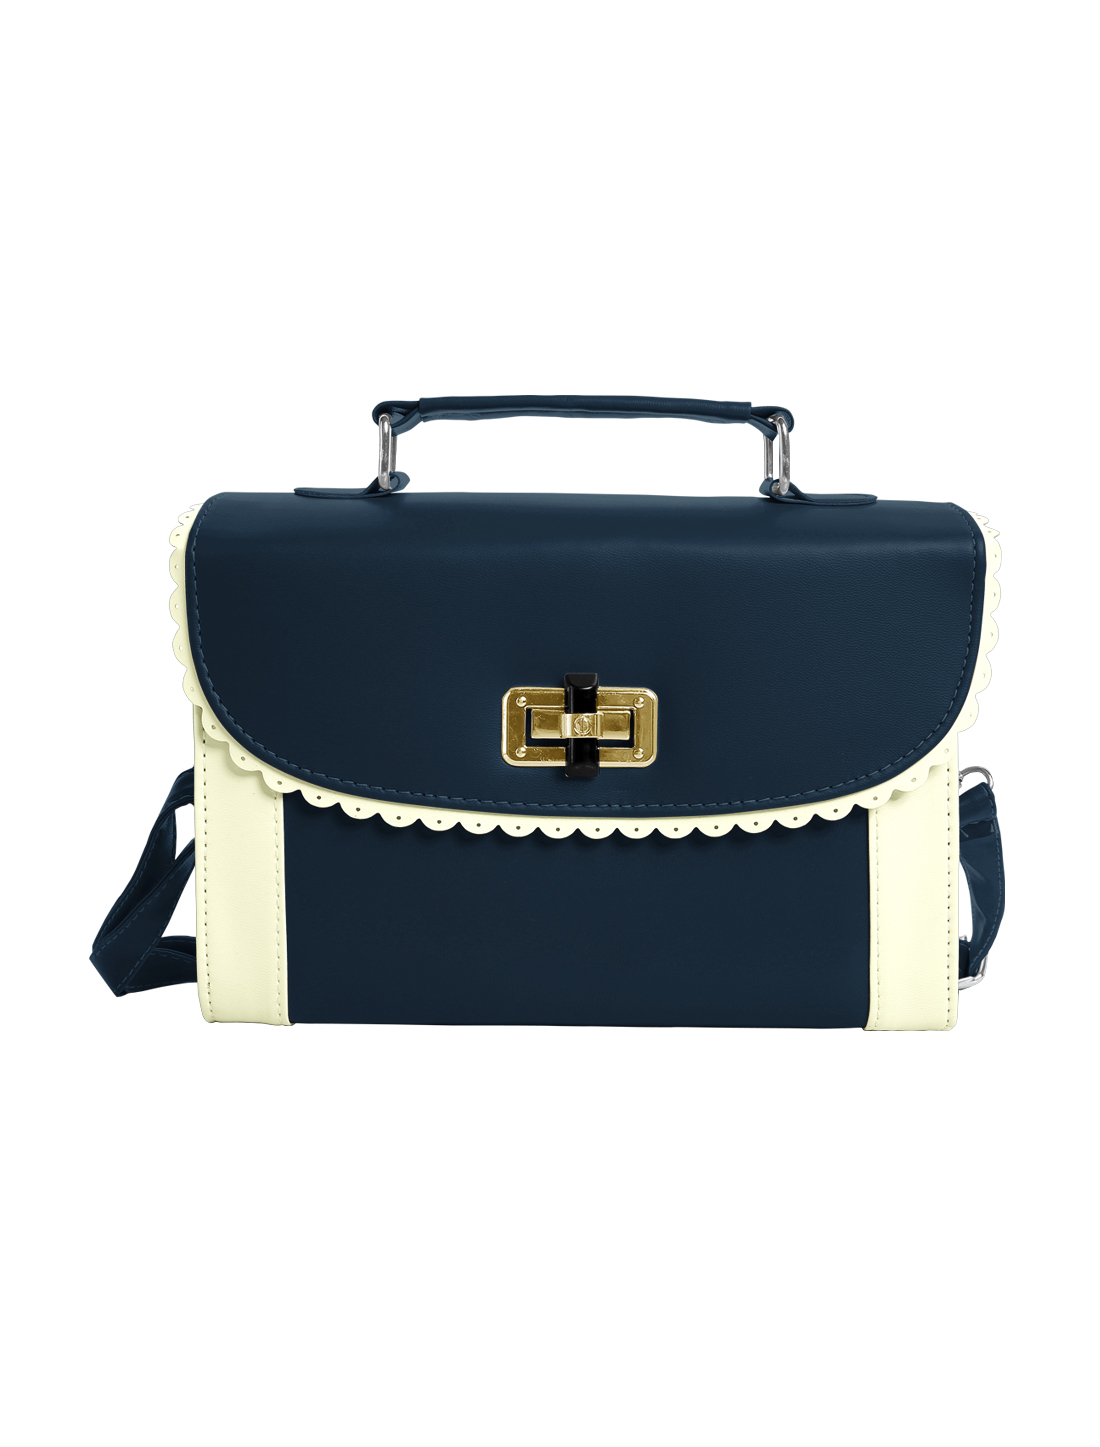 Ladies Contrast Color Scalloped Trim Detail Turn-Lock Clasp Handbag Navy Blue